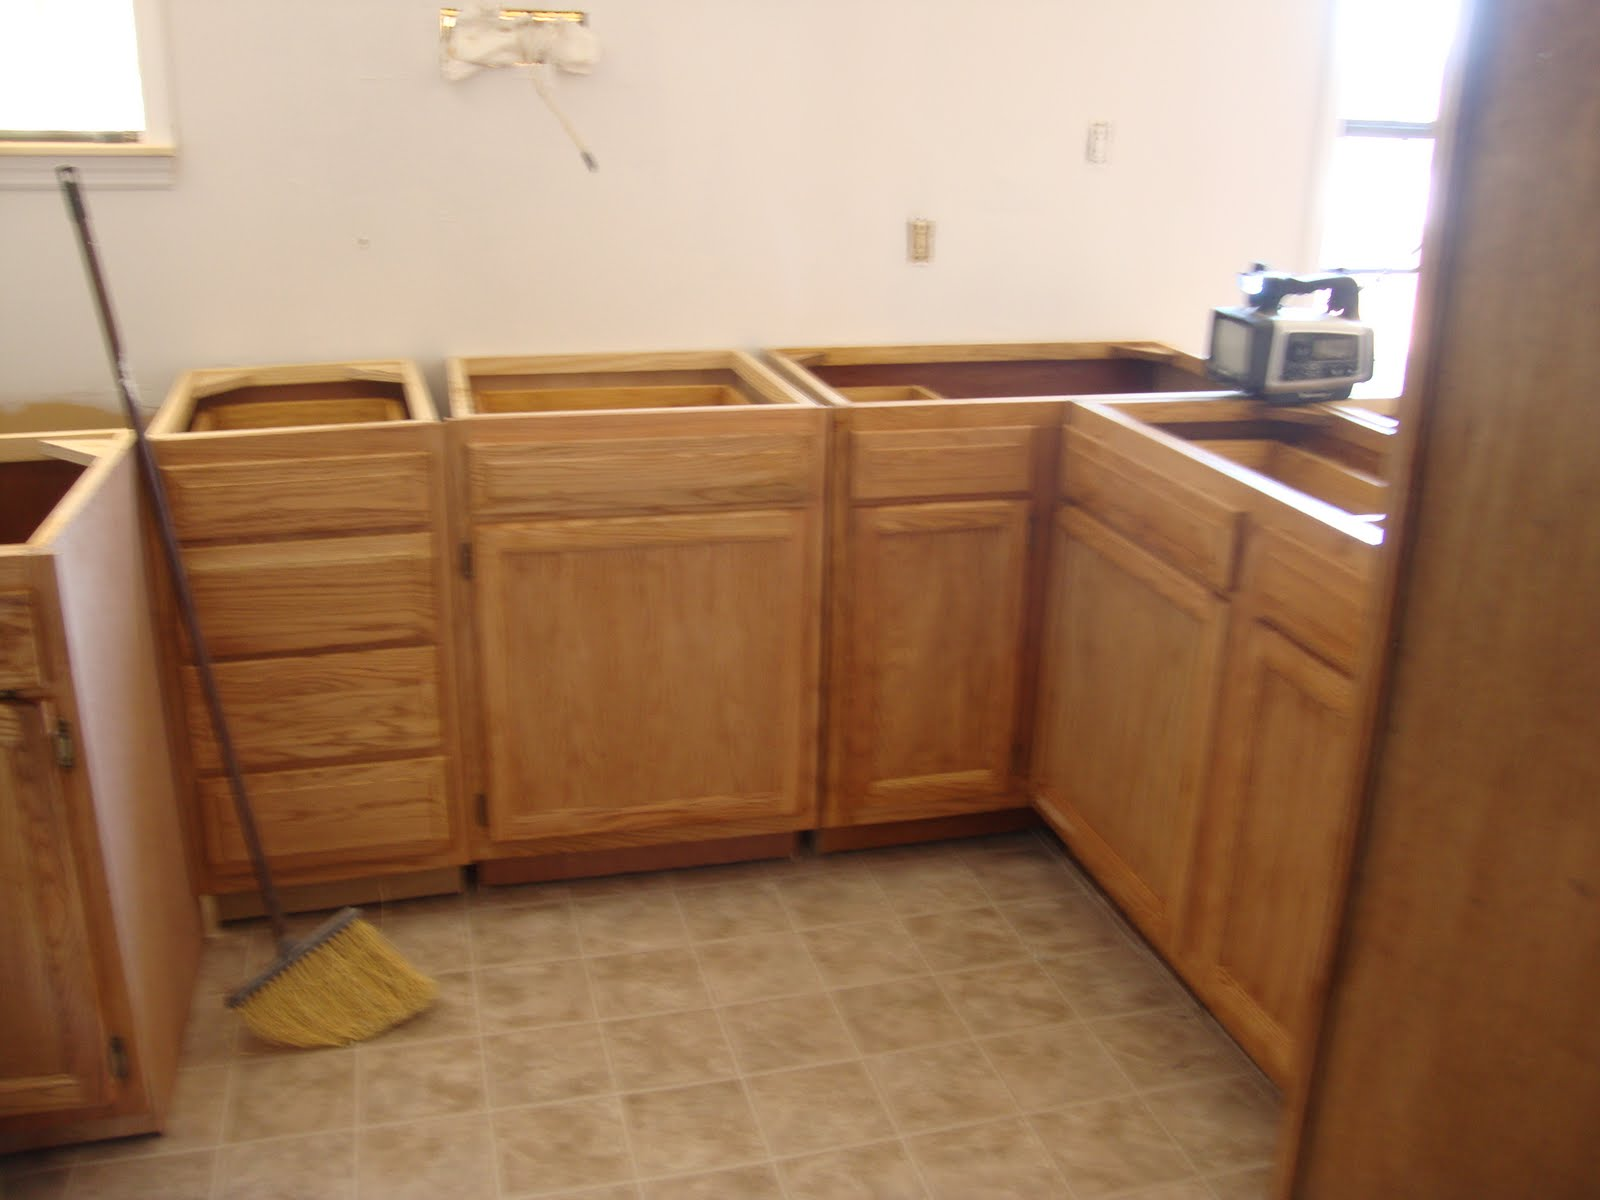 Honey Oak Stain for Kitchen Cabinets